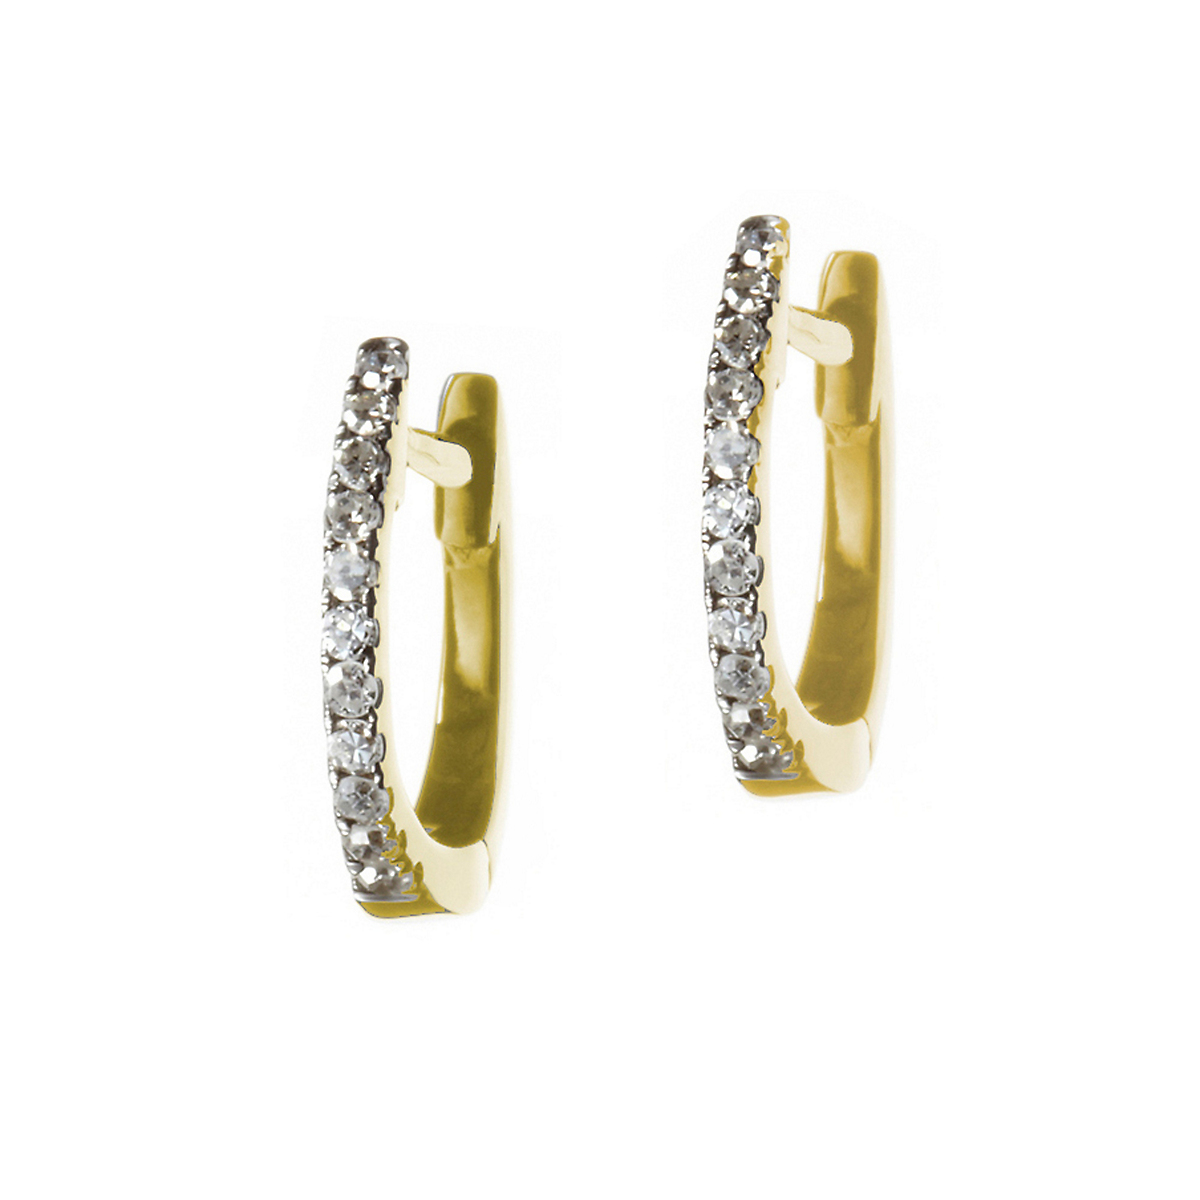 Nikki Baker Lusso Yellow Gold & Diamond Mini Hoop Earrings